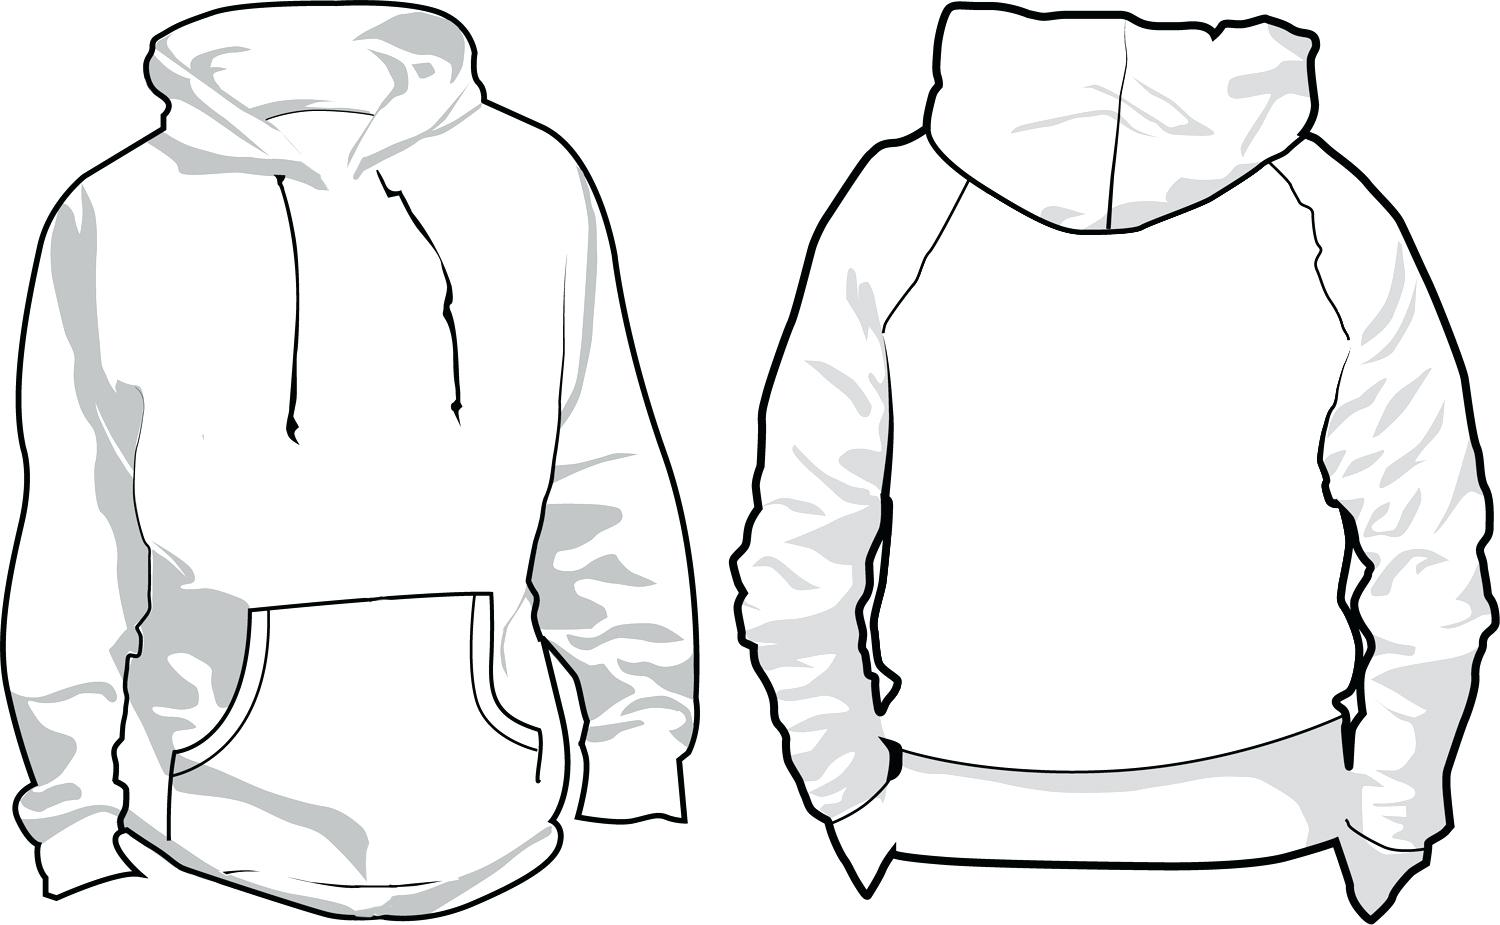 Hoodie clipart, Hoodie Transparent FREE for download on.